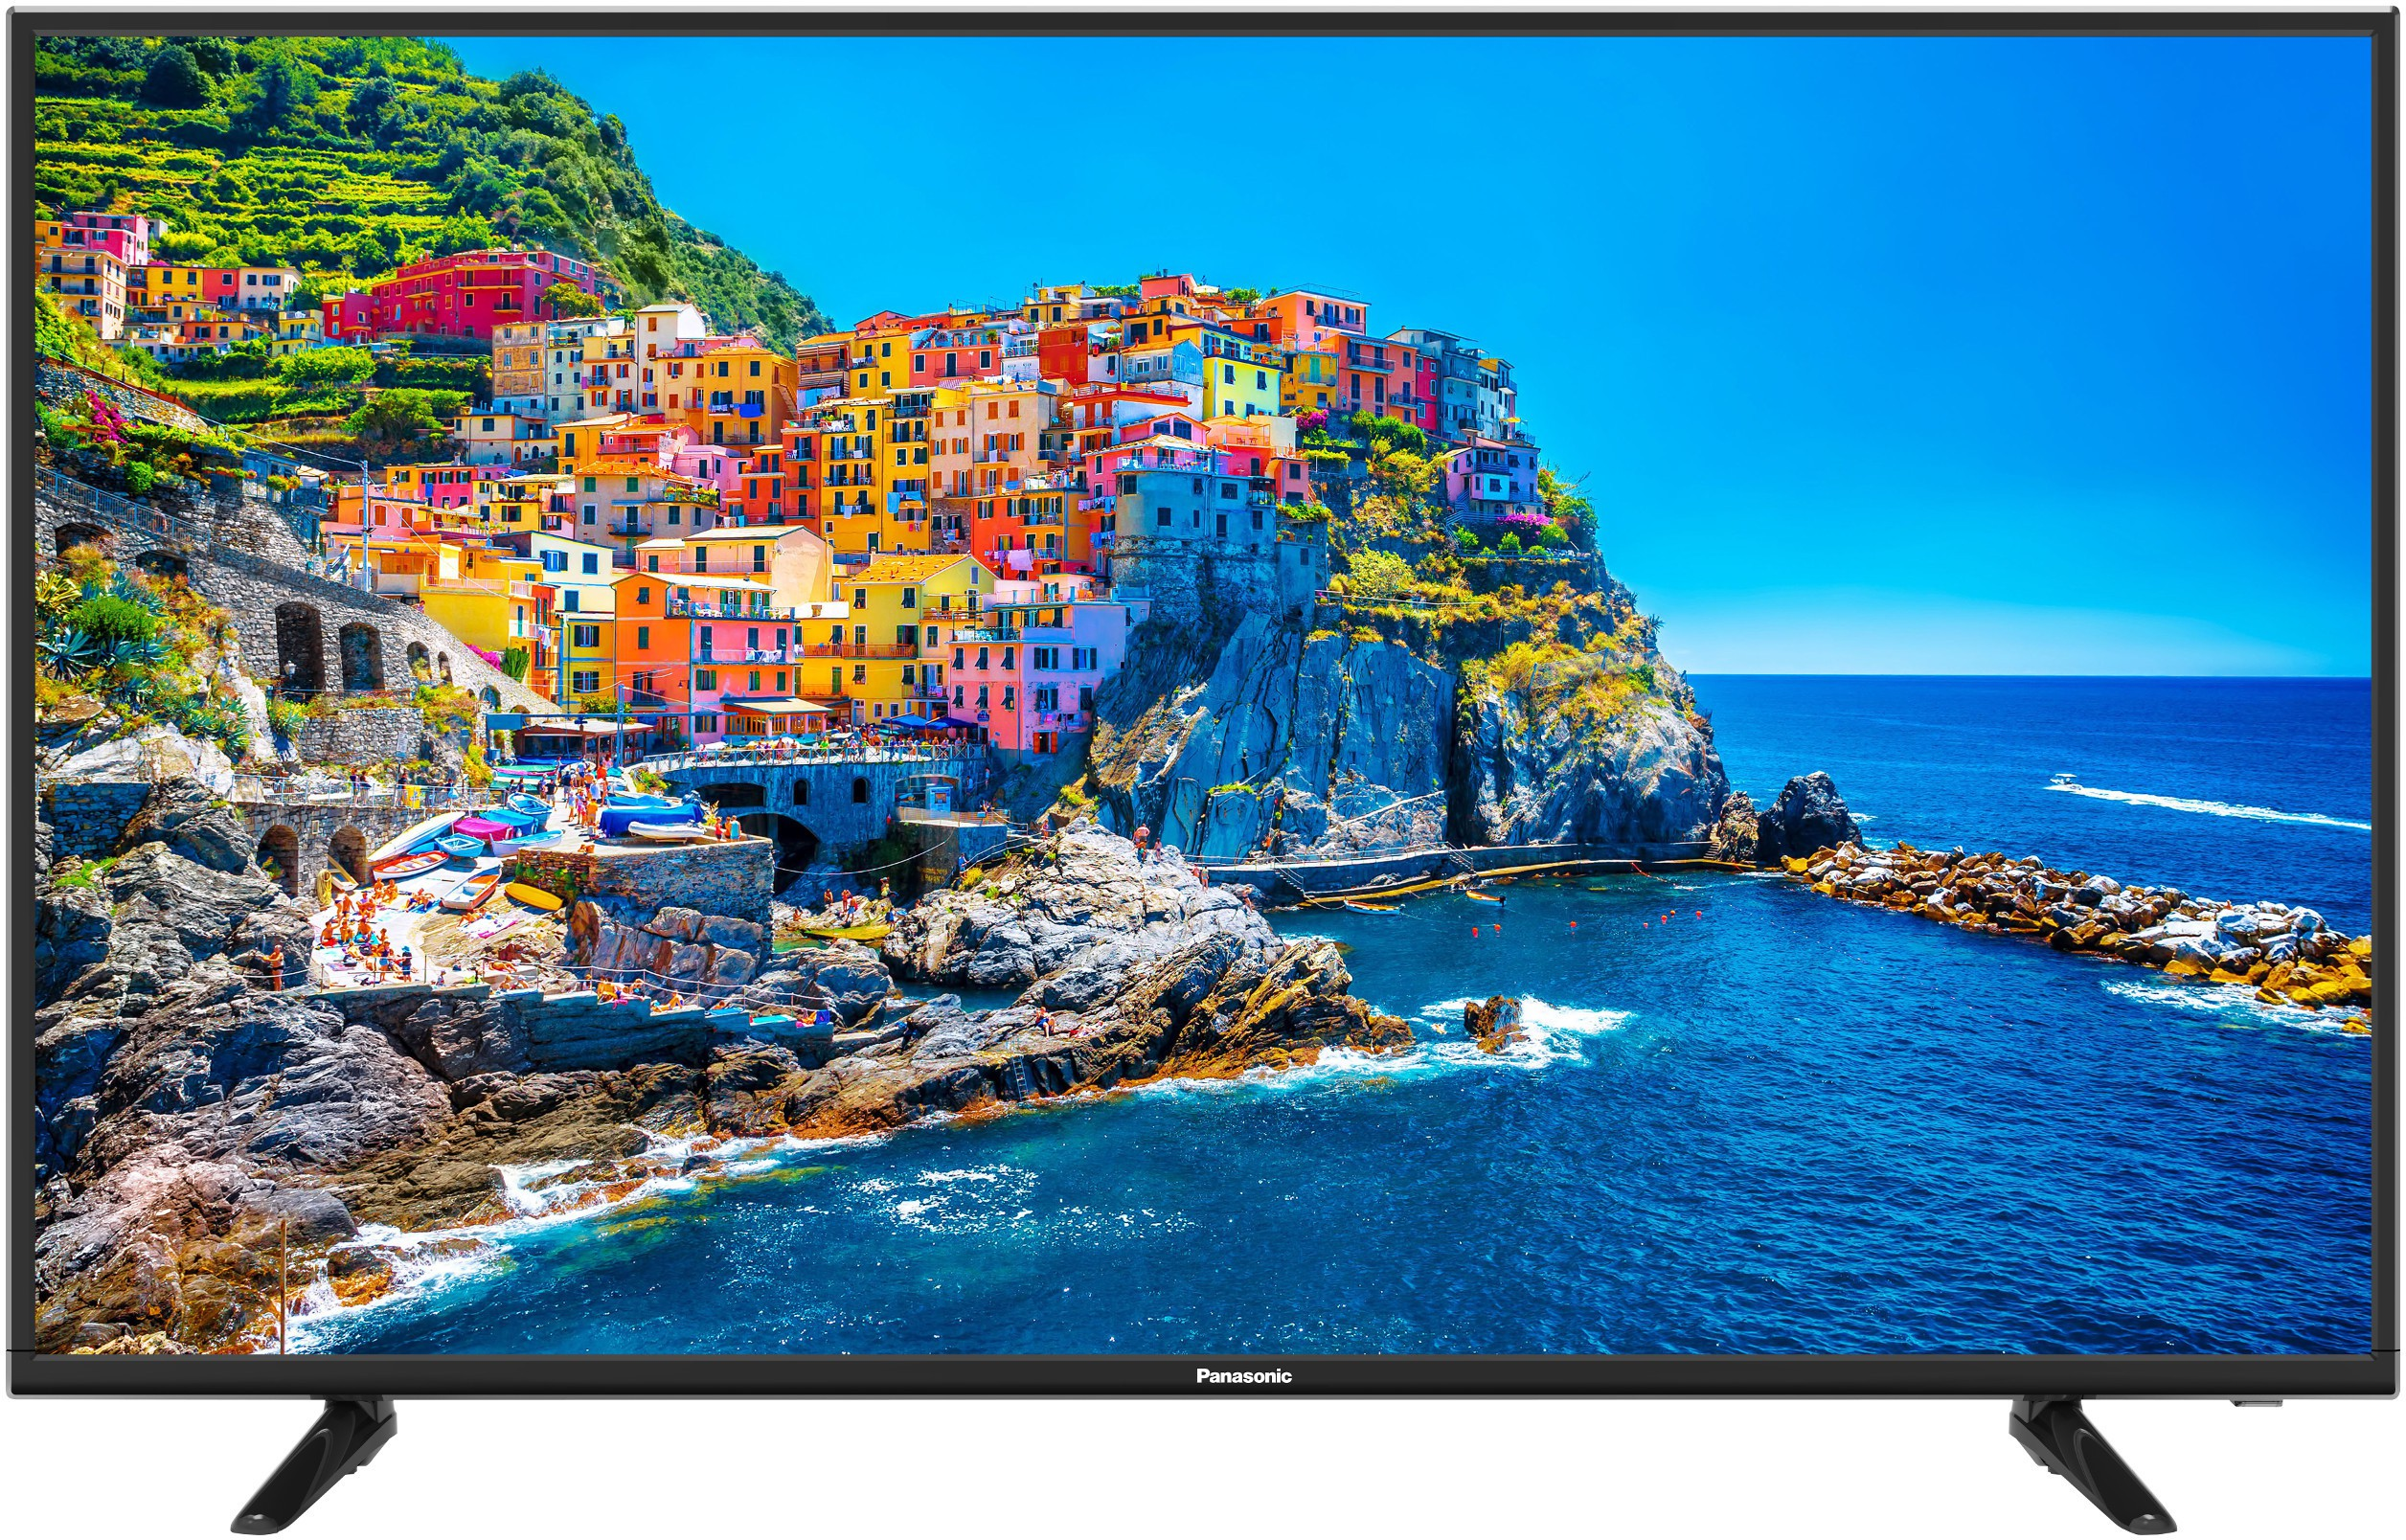 Genial PANASONIC TH 58D300DX 58 Inches Full HD LED TV